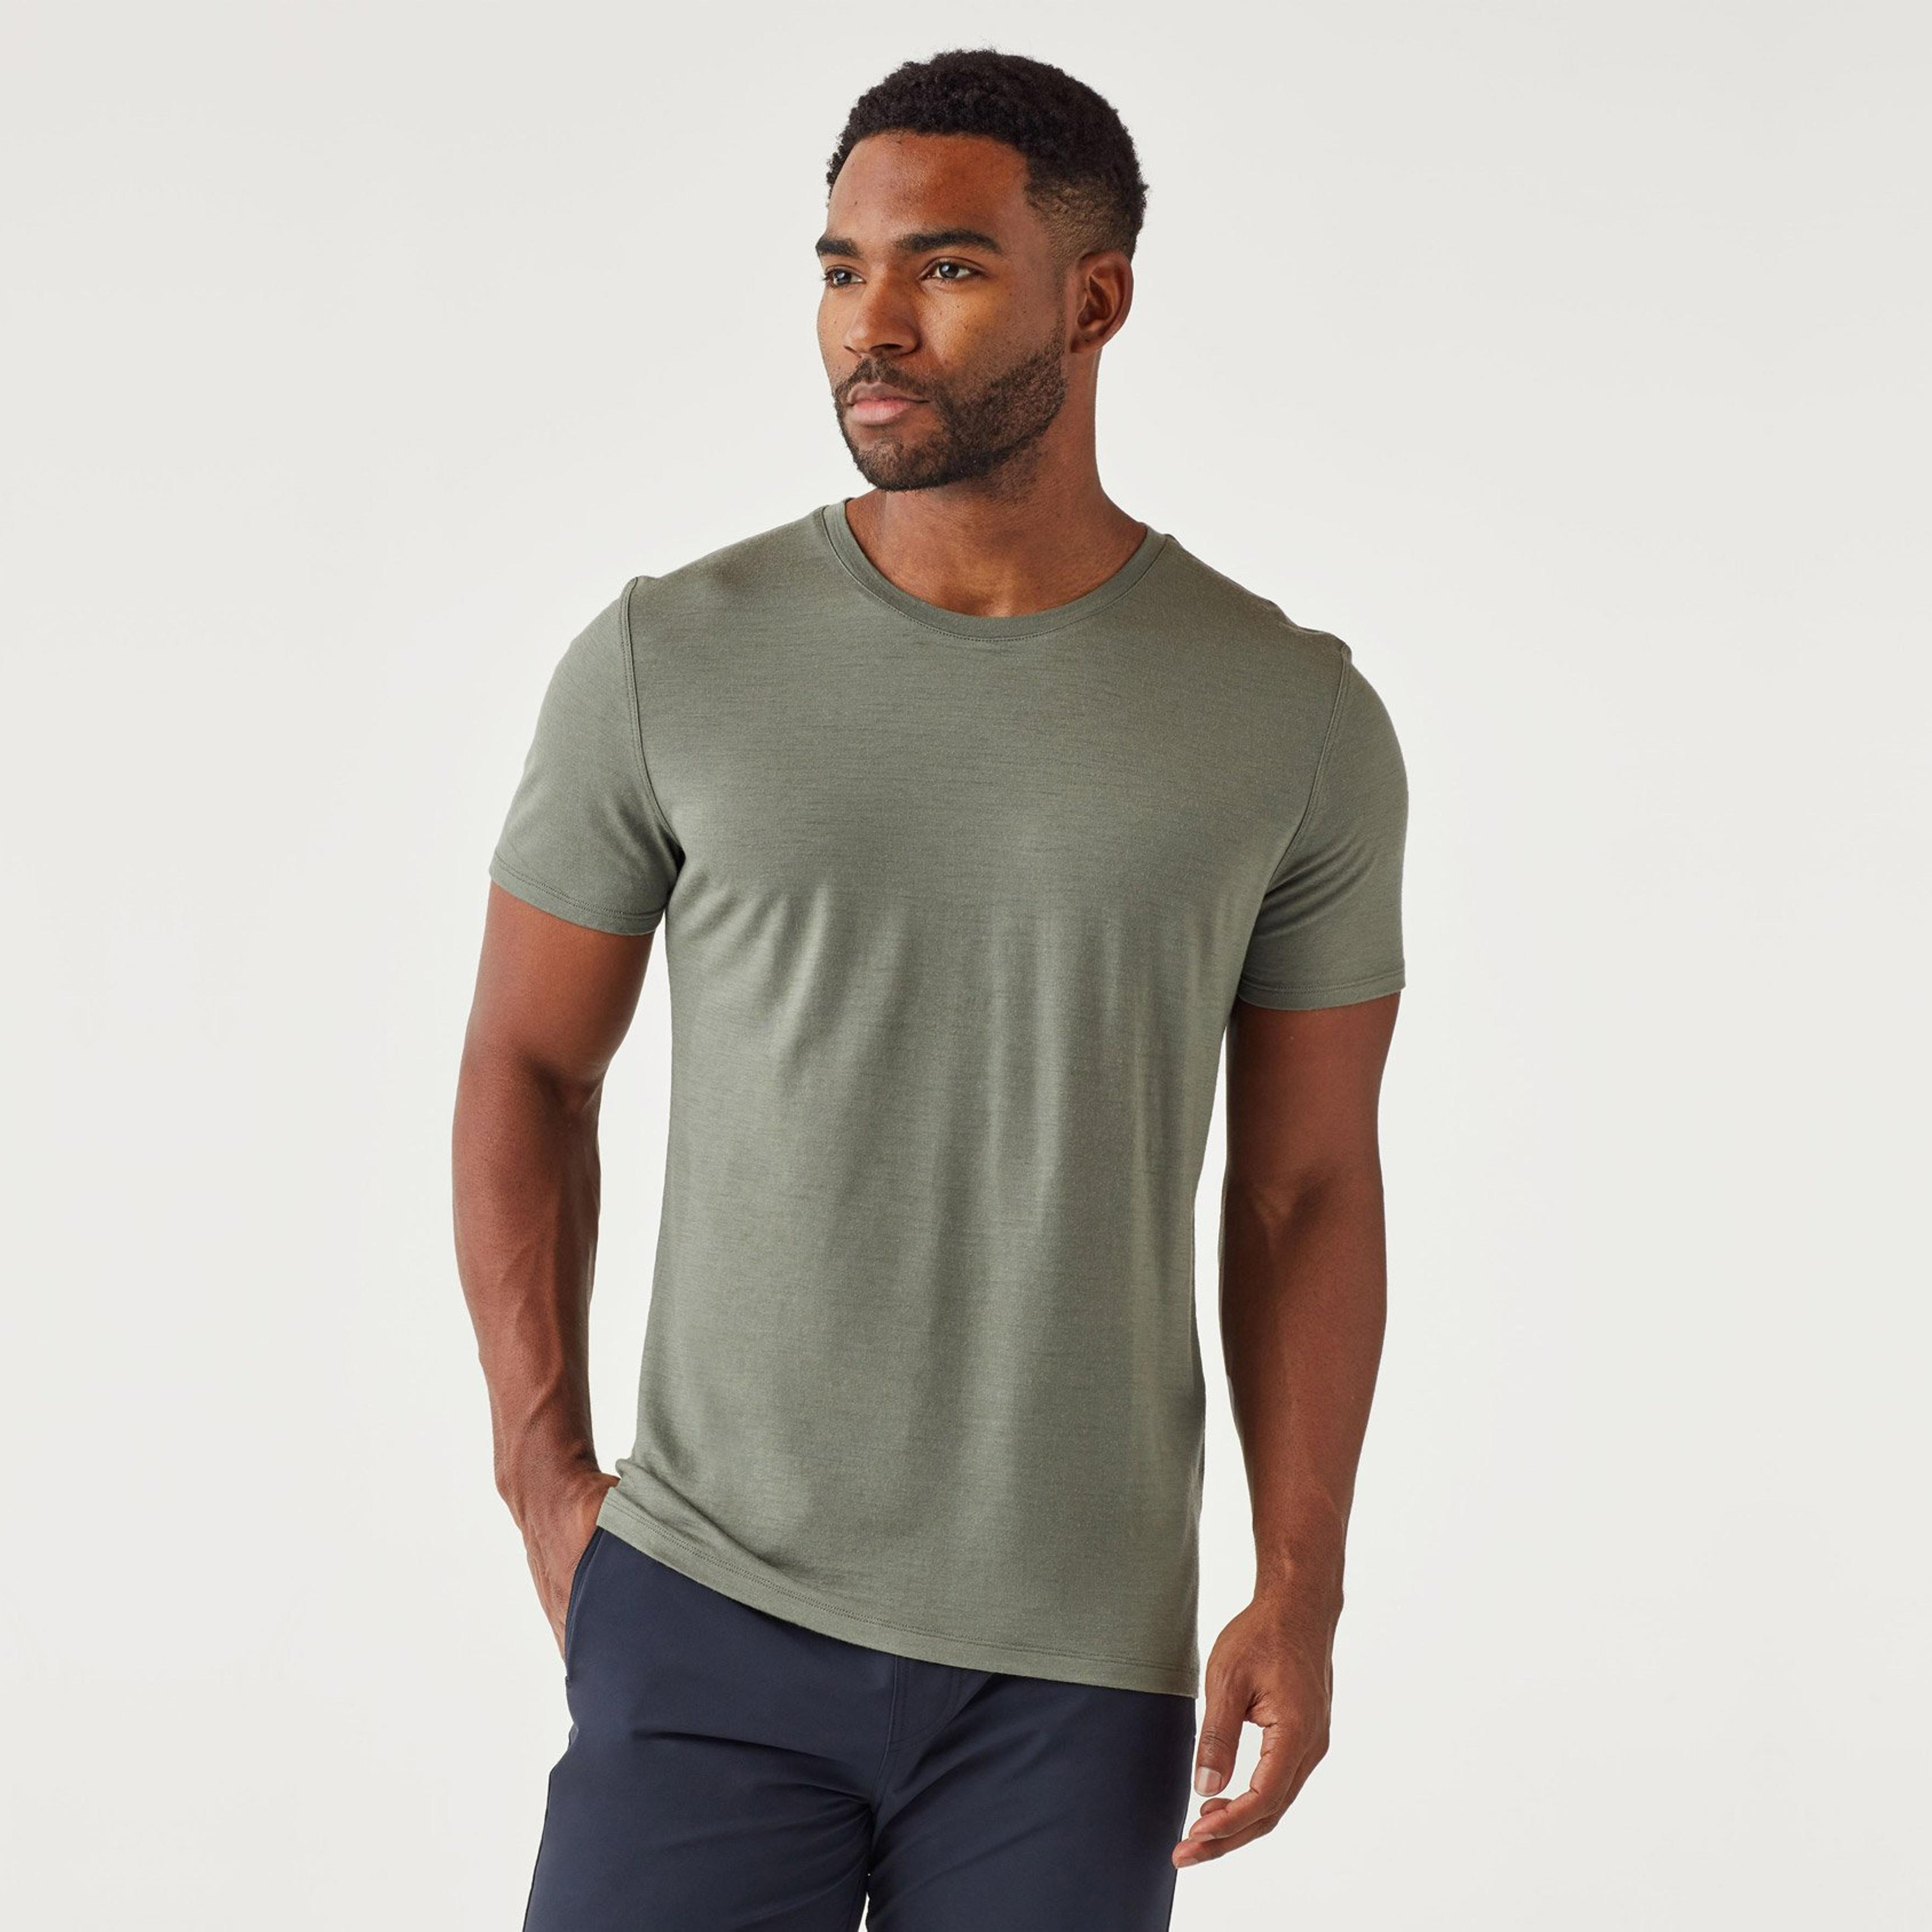 Convoy Tee in Sage